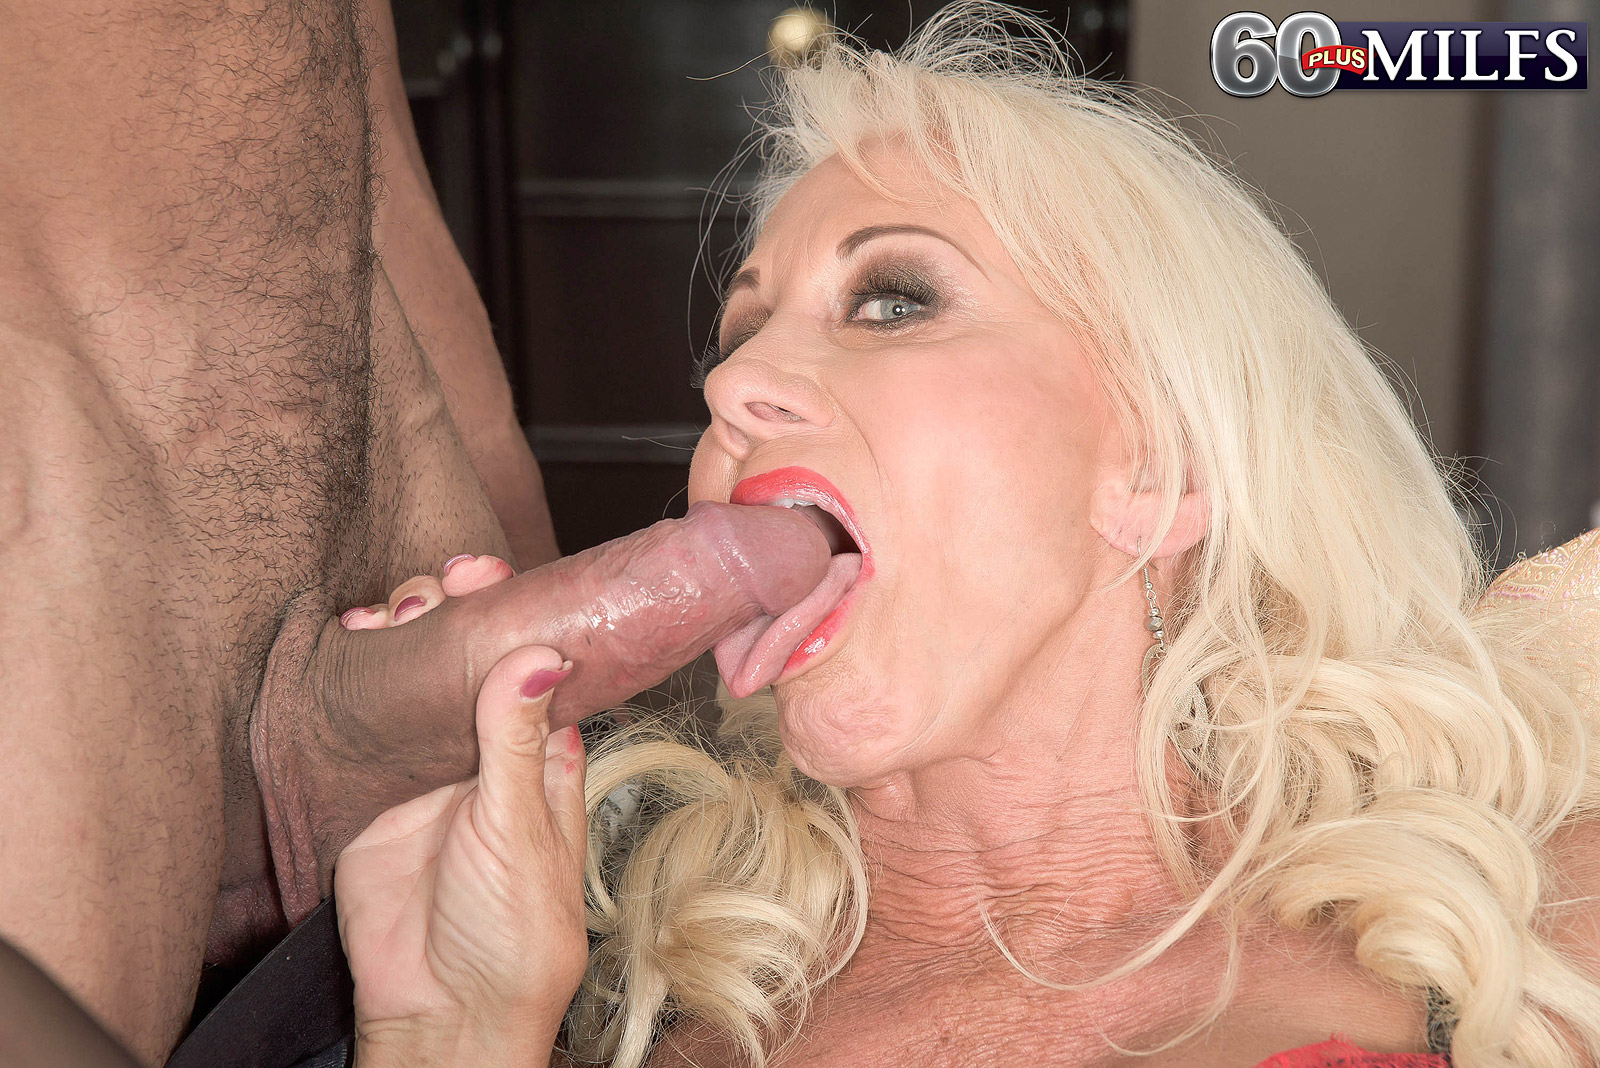 free porn samples of 60 plus milfs - old mature granny fuck young boys